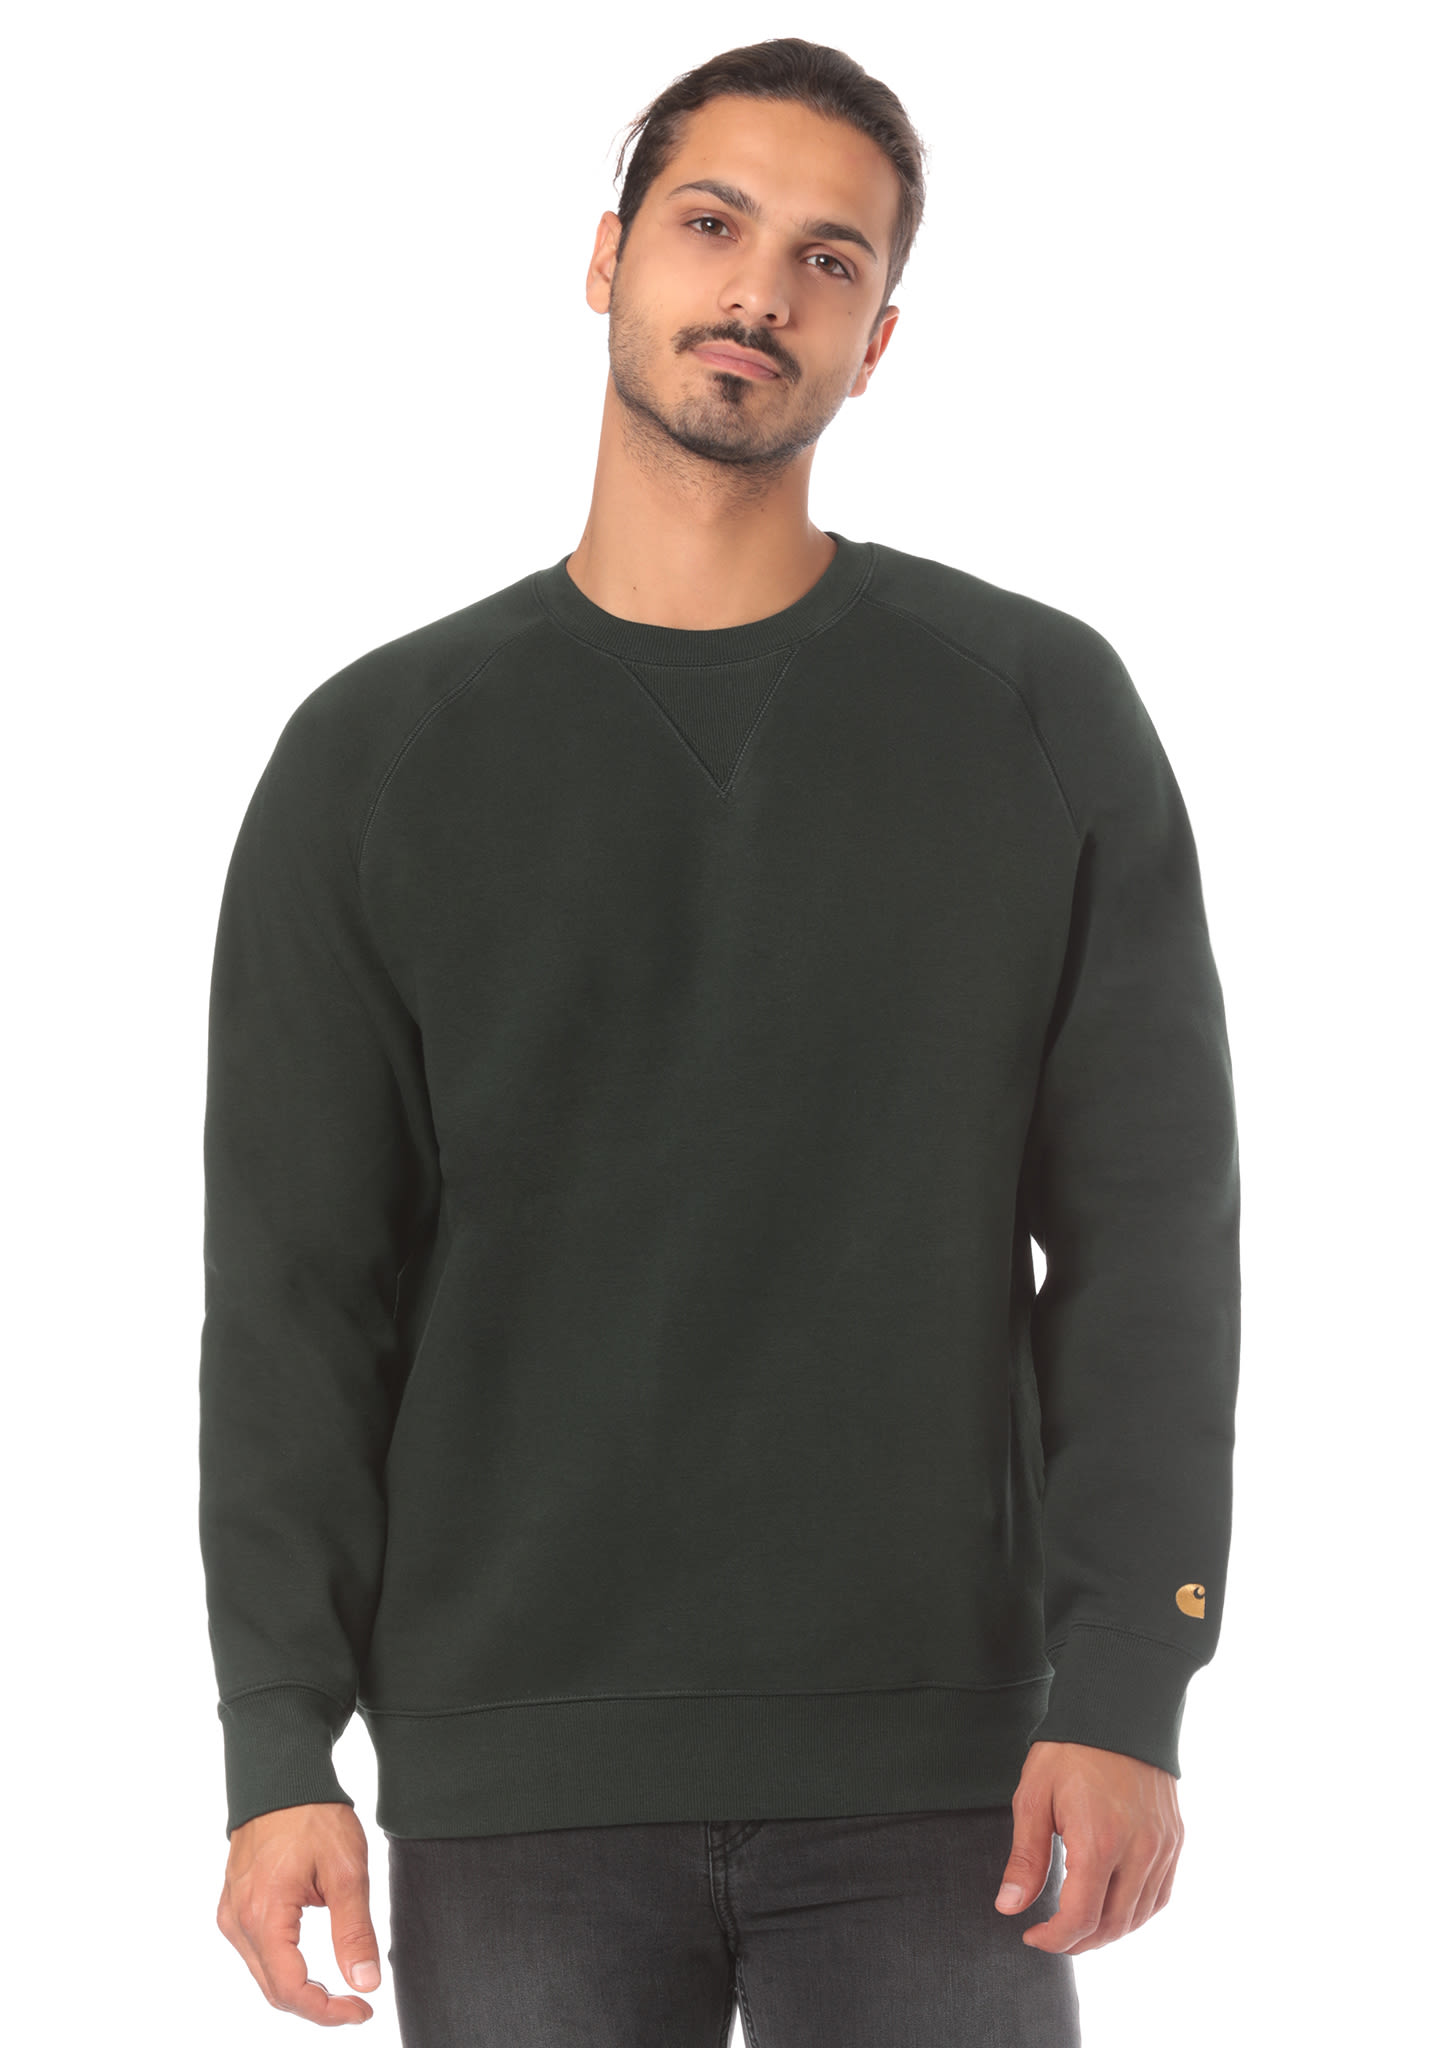 Sports Vert Carhartt Pour Wip Chase Homme Sweat Planet xXqqH0wP7